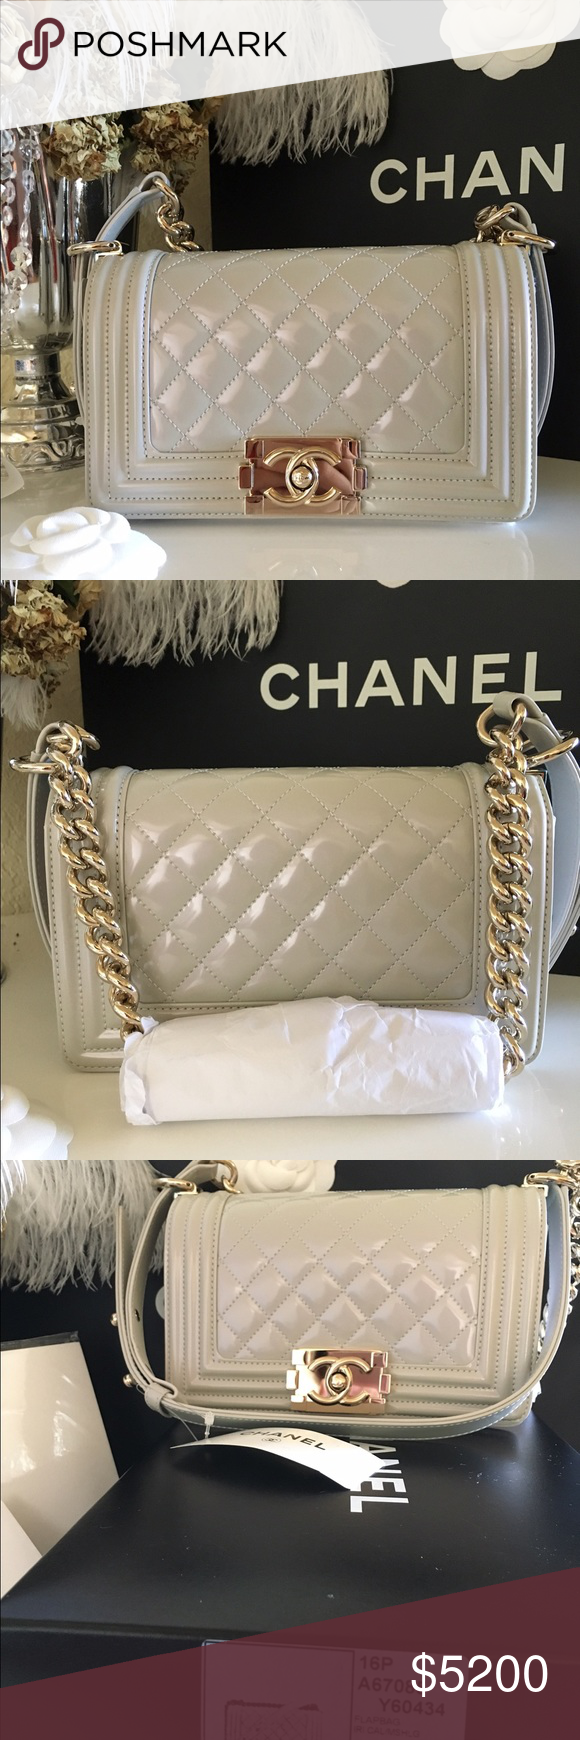 CHANEL Patent Leather Boy Bag Brand  Chanel Style  Boy Bag Type  Crossbody  Shoulder af2e484f79230